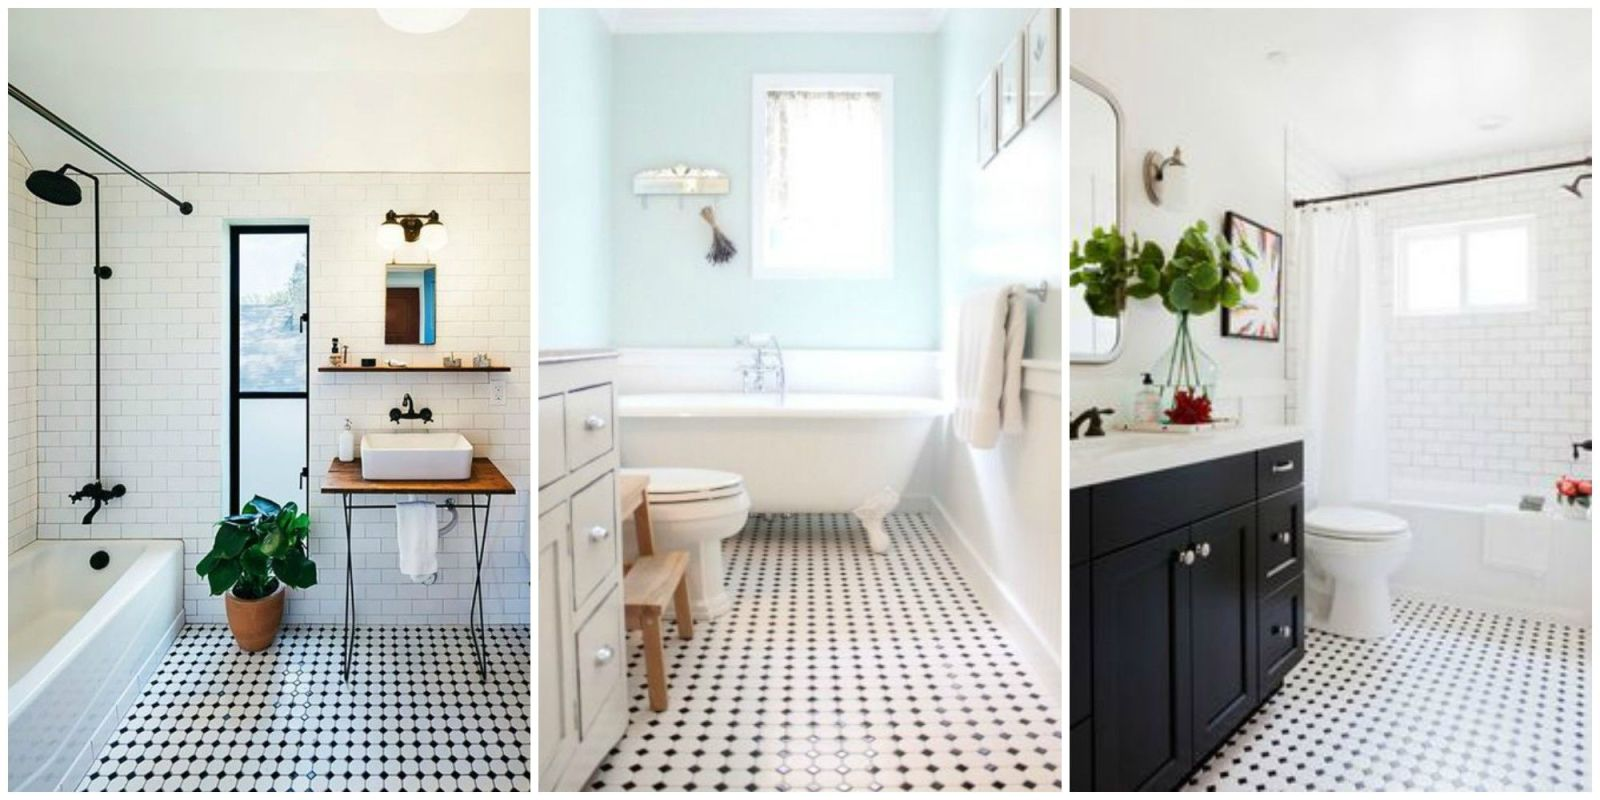 Clic Black And White Tiled Bathroom Floors Are Making A